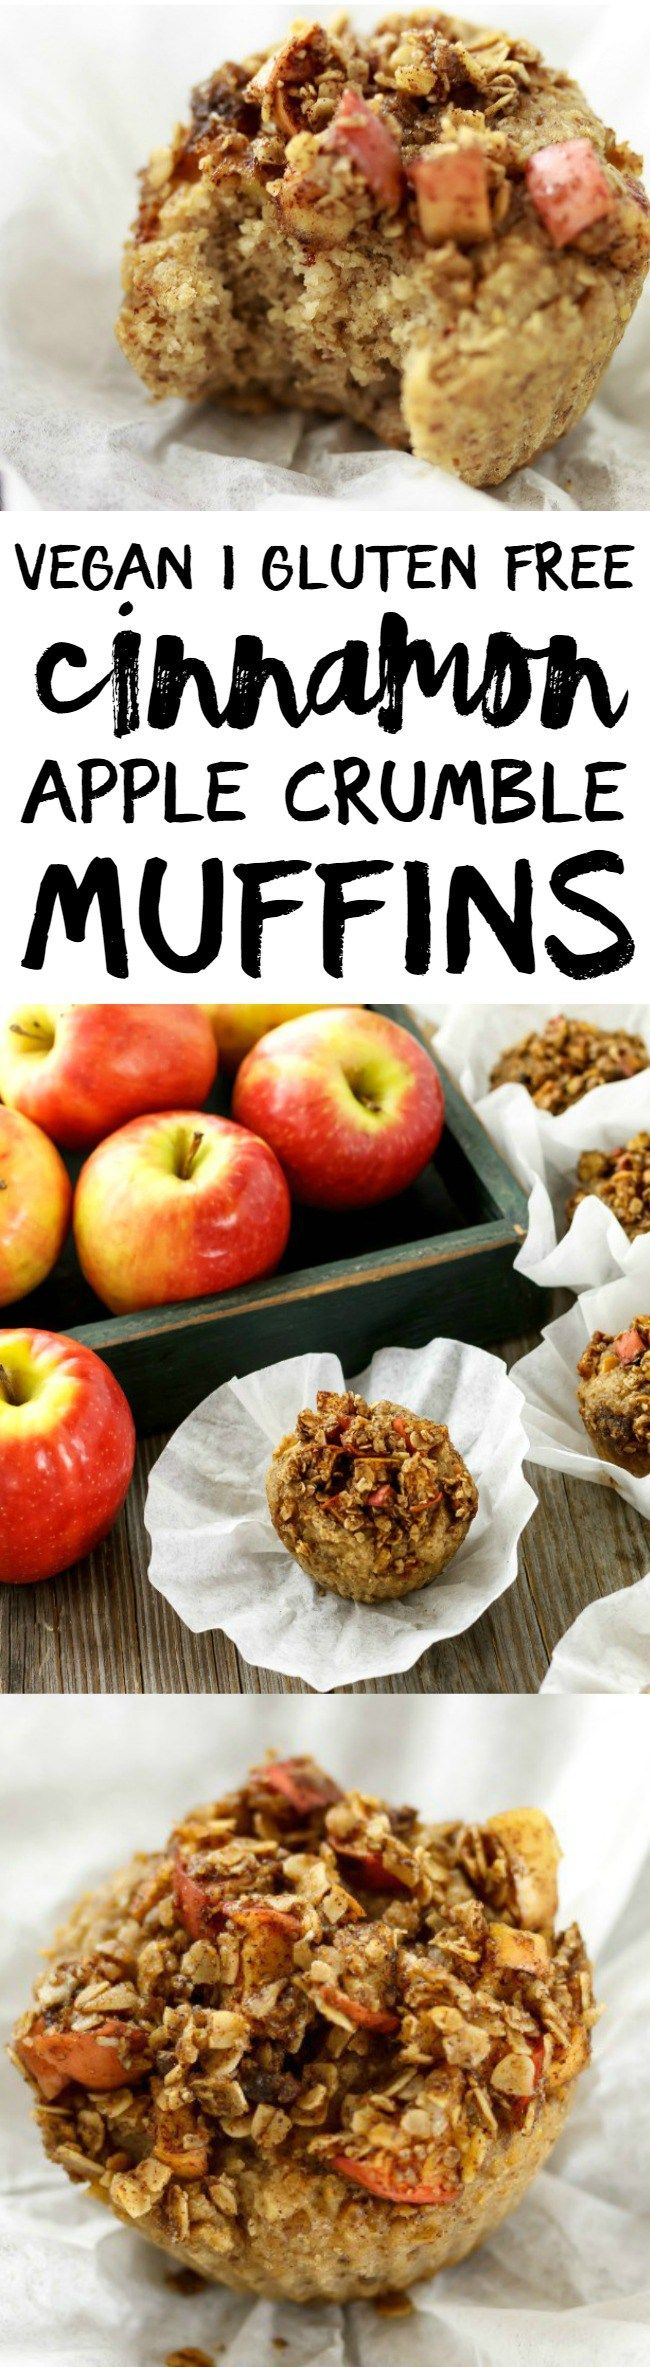 Make a batch of these Cinnamon Apple Crumble Muffins and have easy, delicious breakfasts and snacks at your fingertips! Vegan, gluten free, healthy!